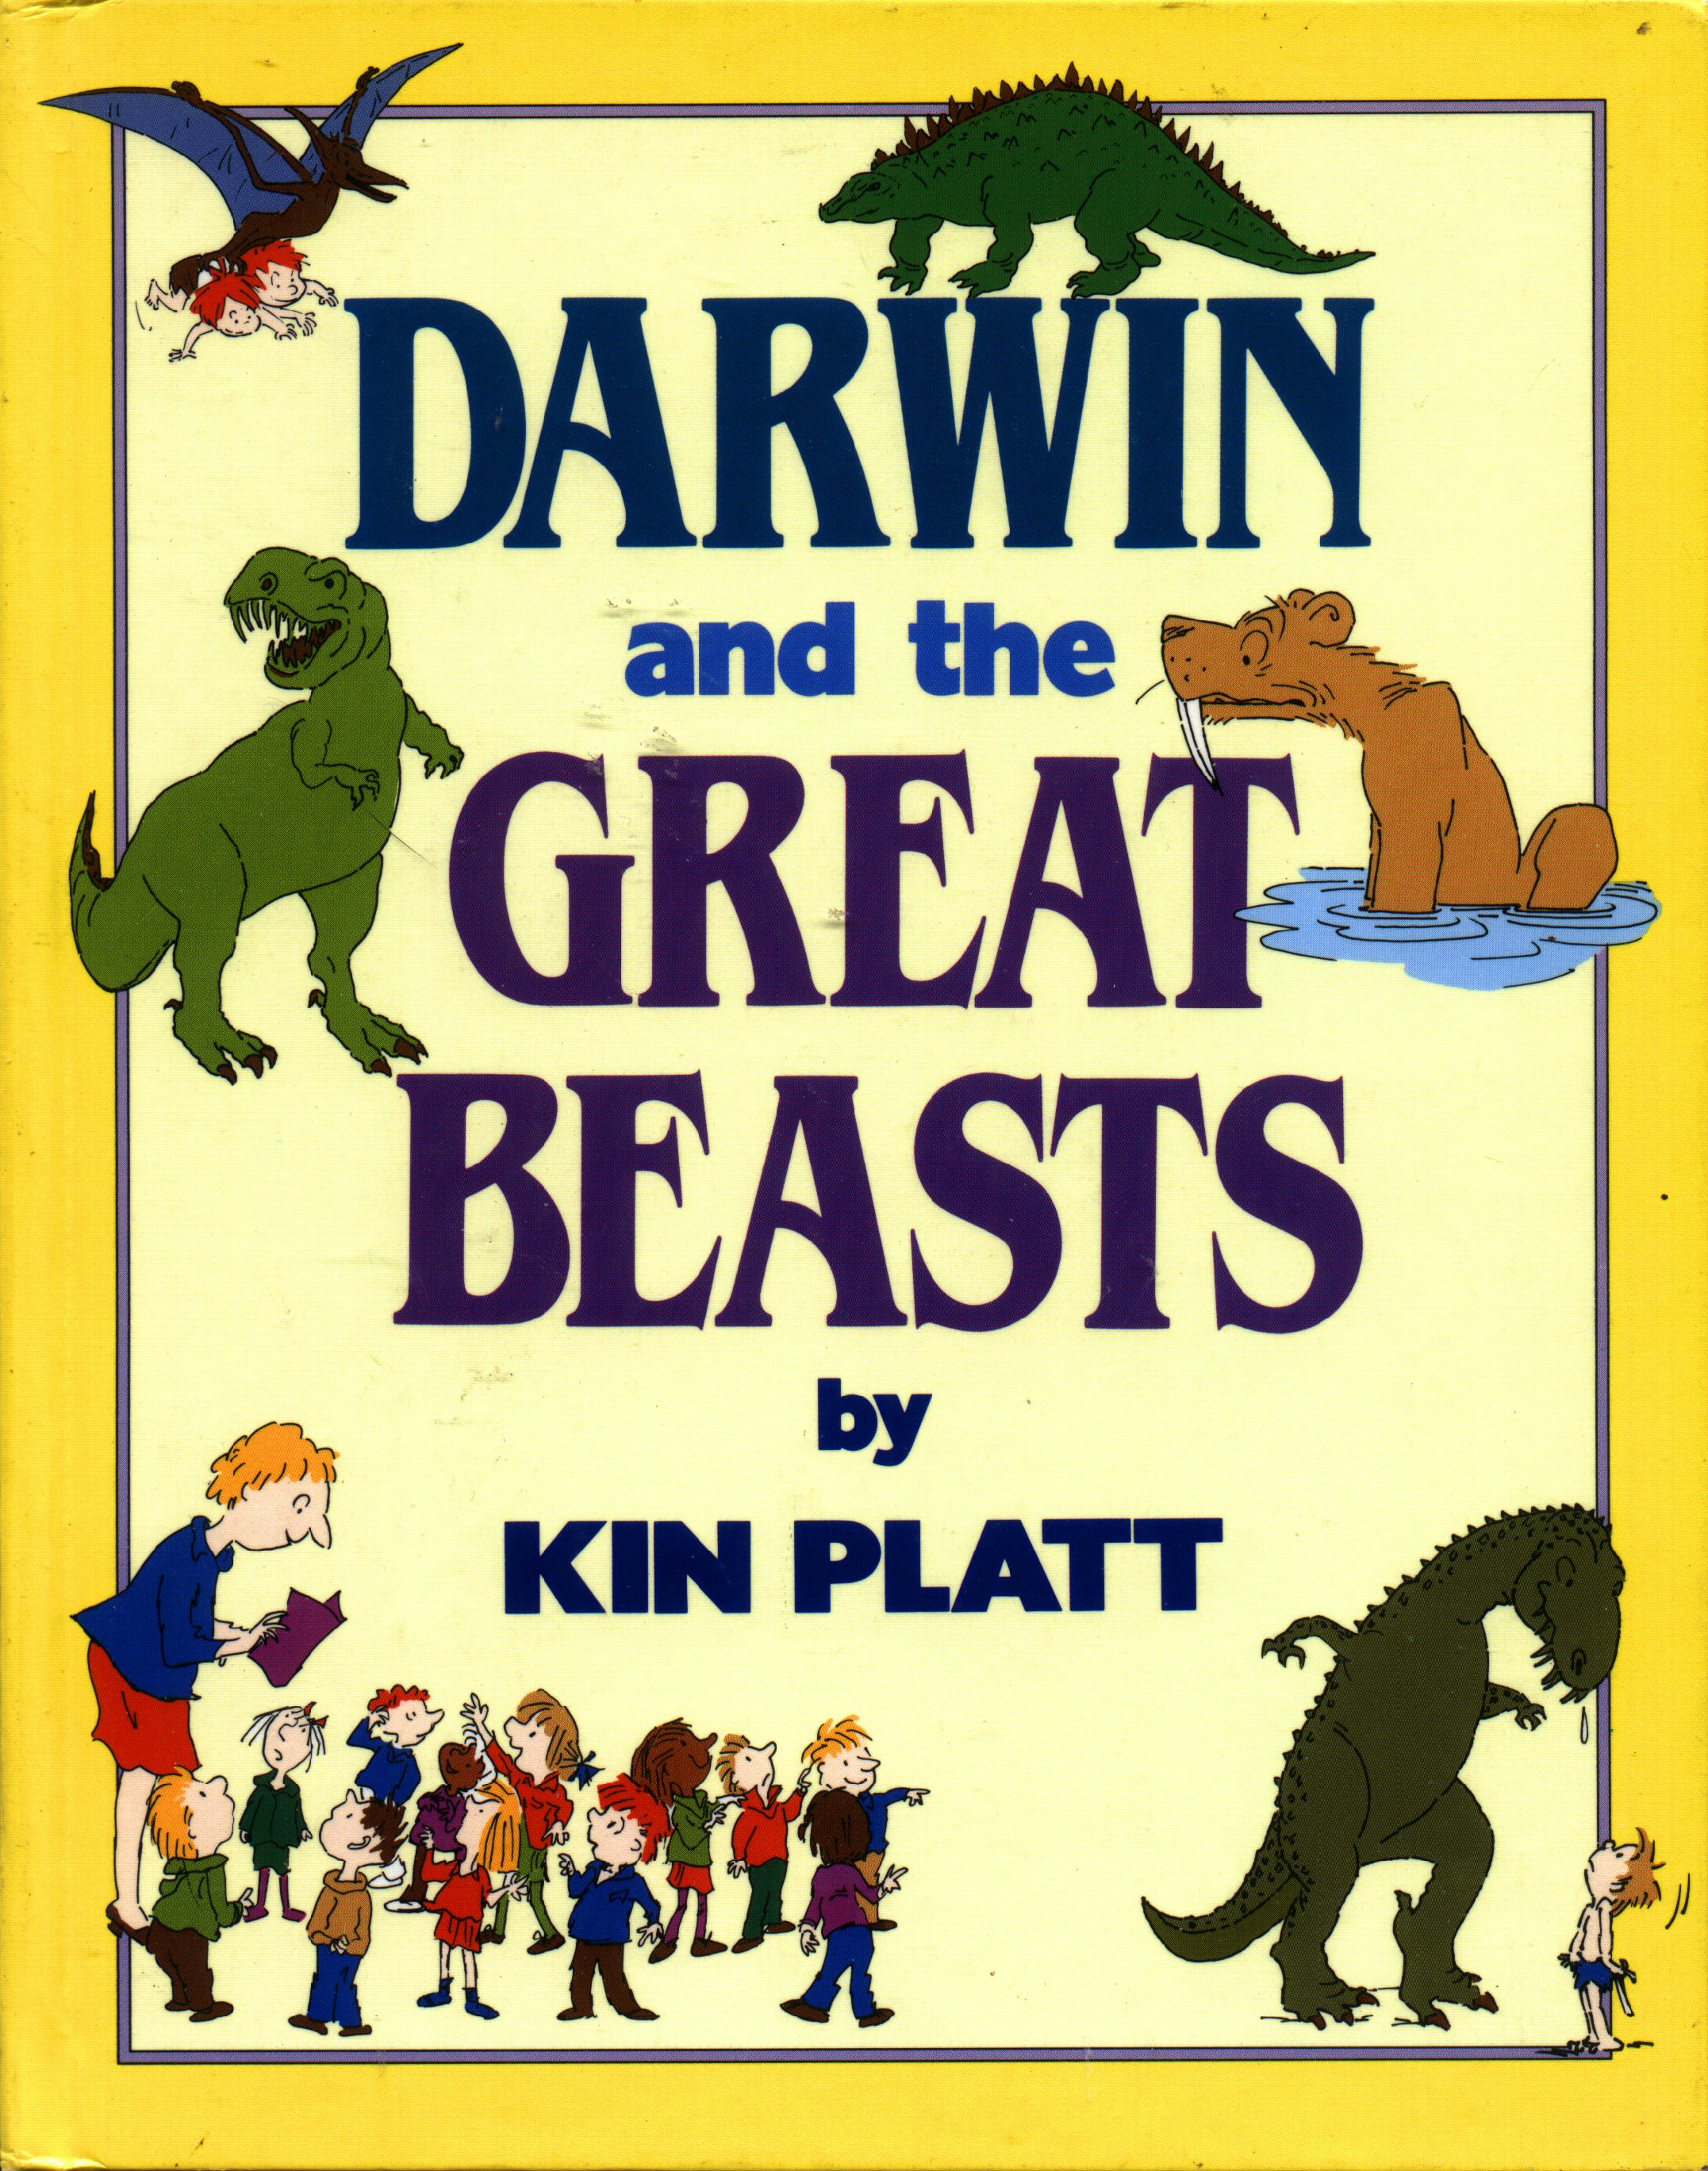 Darwin and the Great Beasts